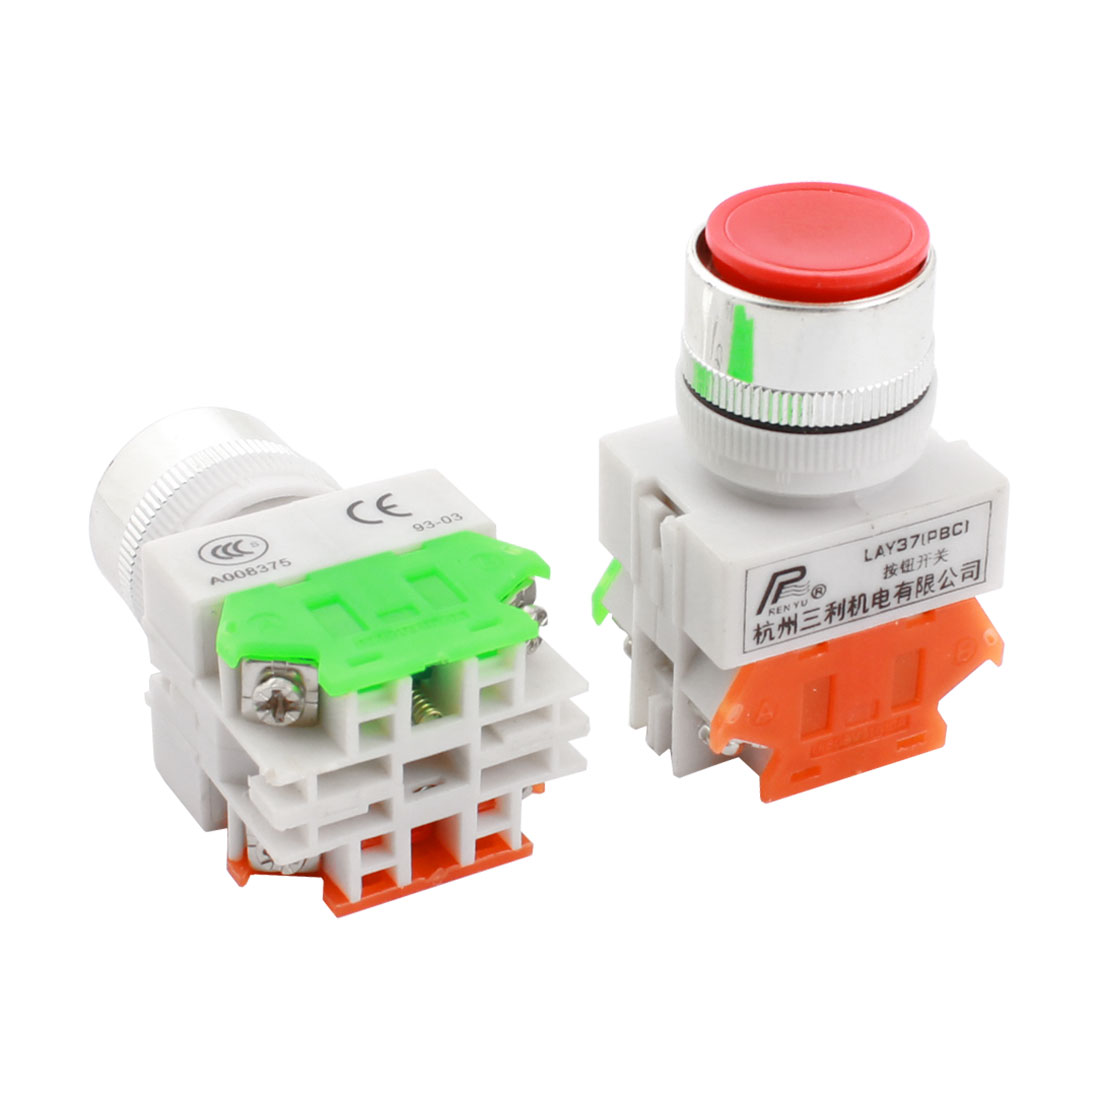 2 Pcs AC600V 10A 24mm Dia Thread Panel Mount DPST 4 Screw Terminals Momentary Red Plastic Head Push Button Switch